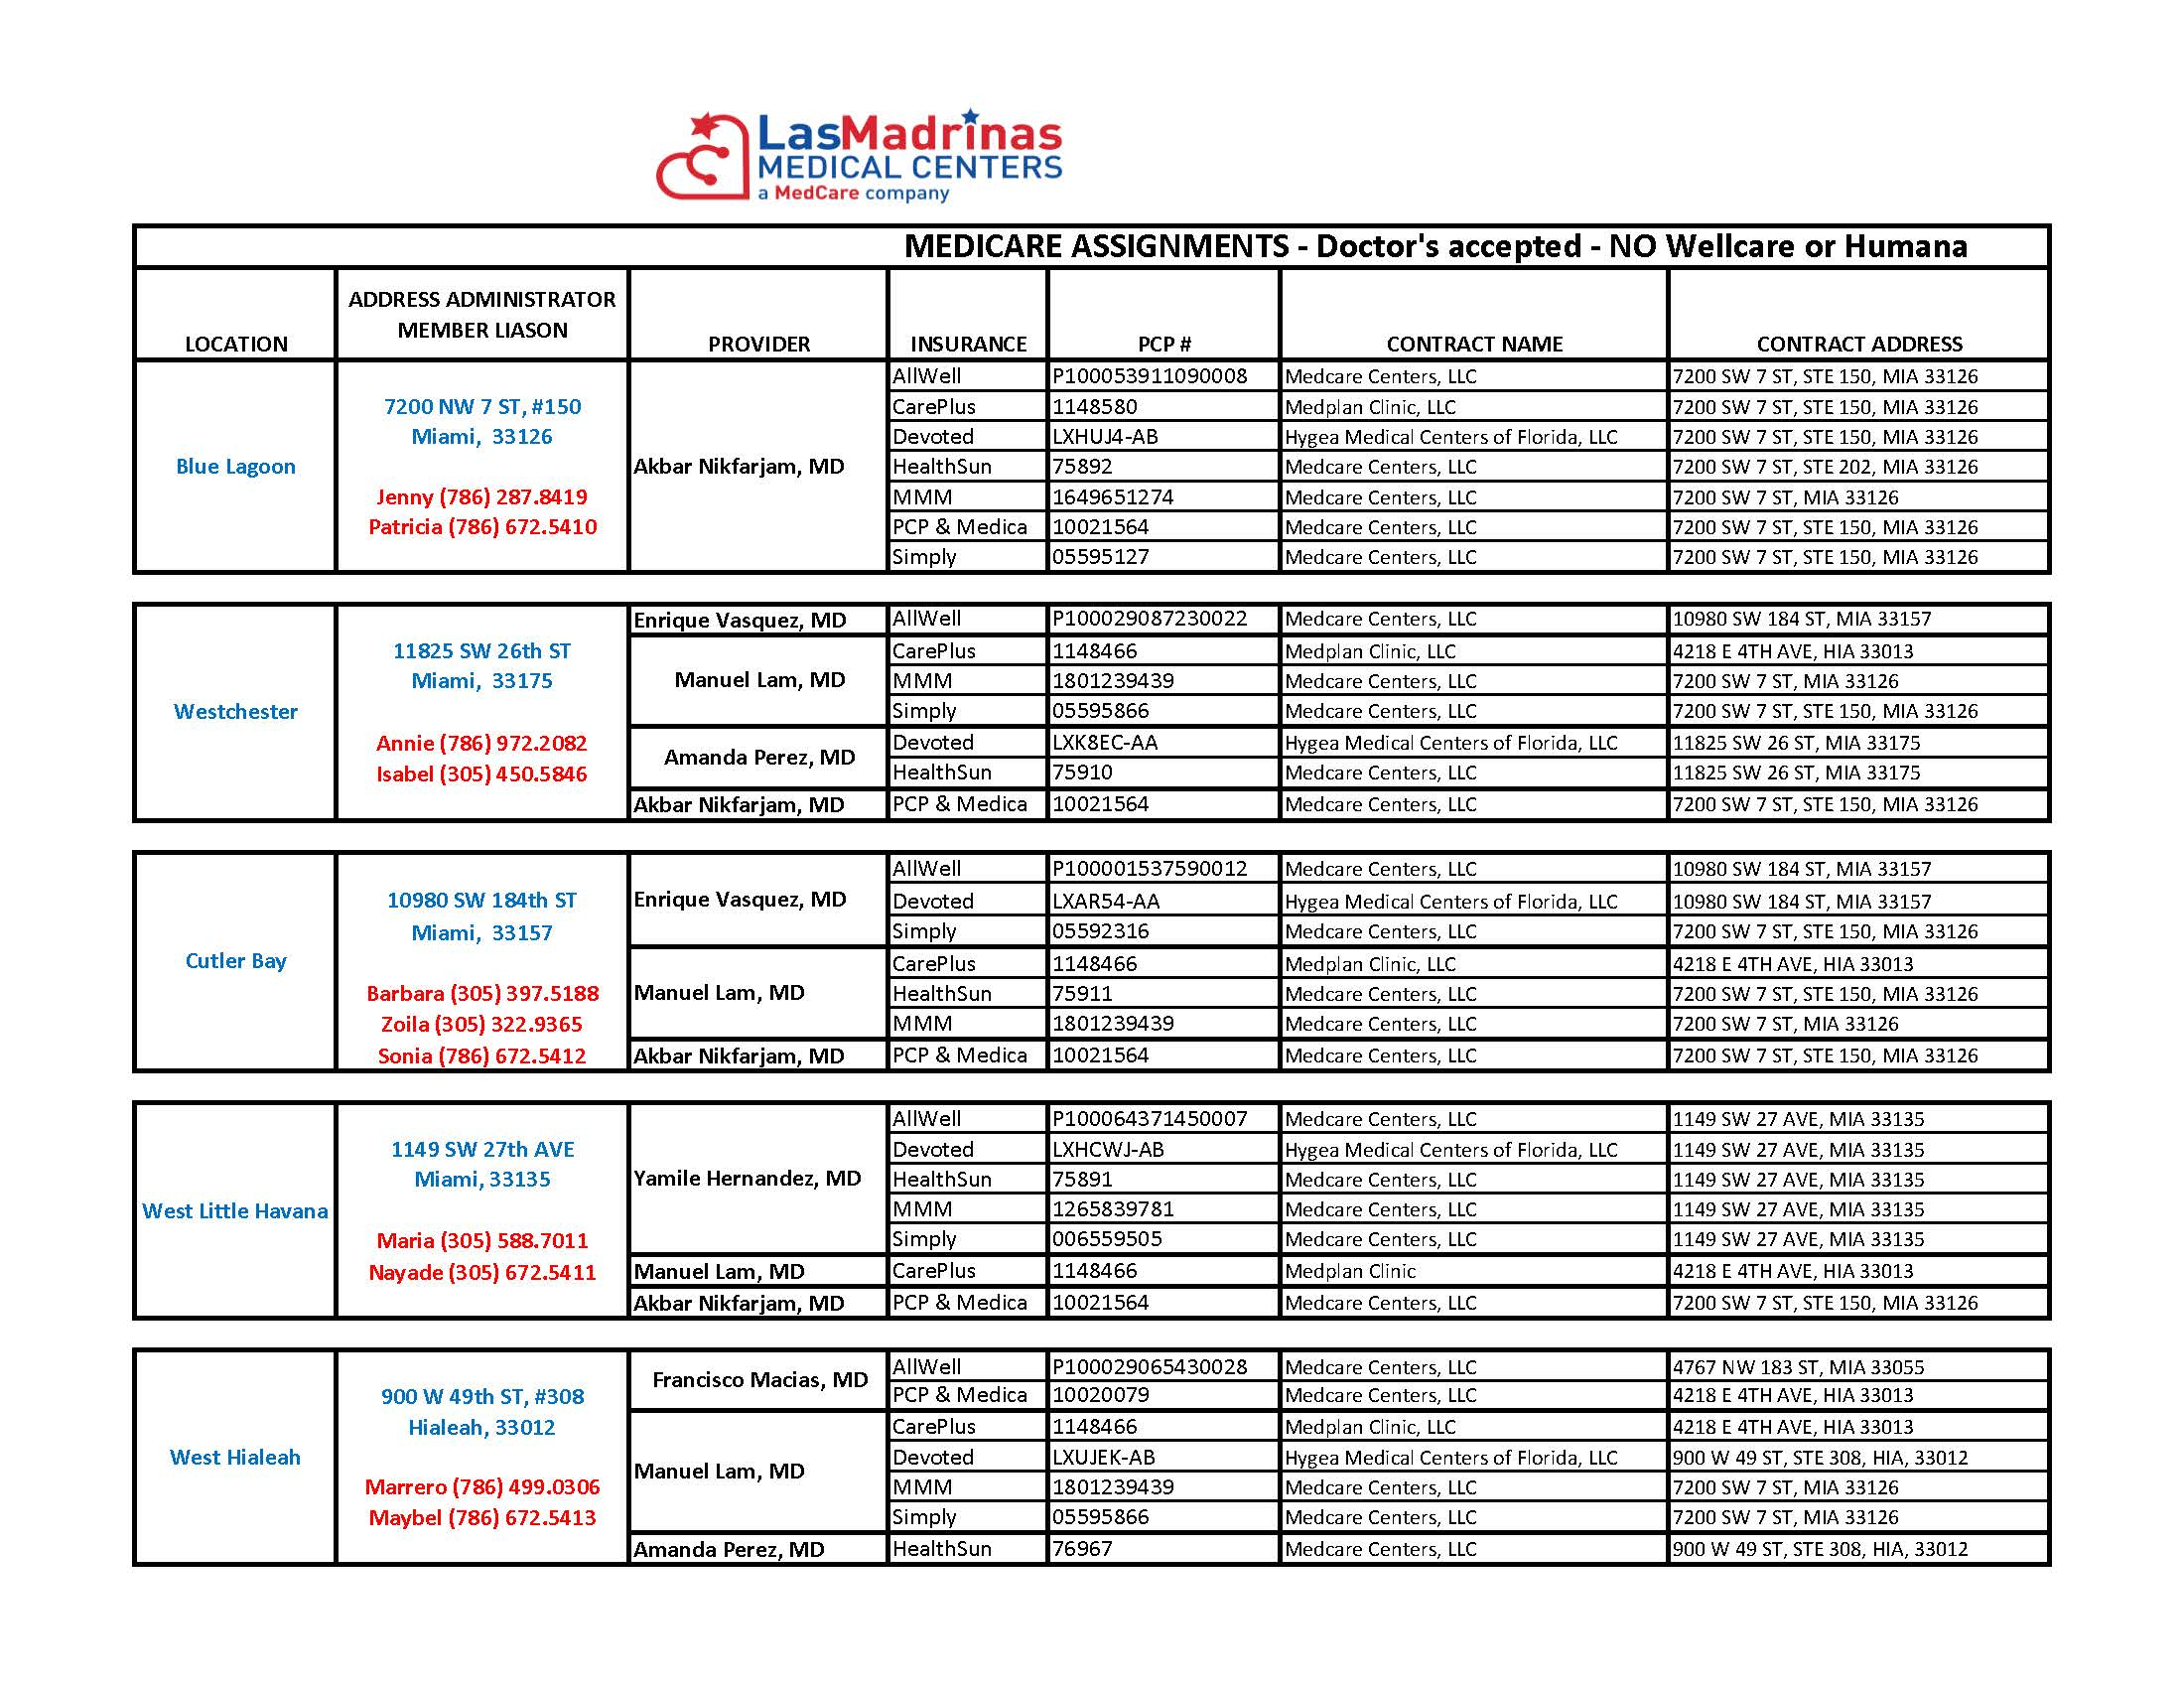 Las Madrinas Clinics and carriers accepted